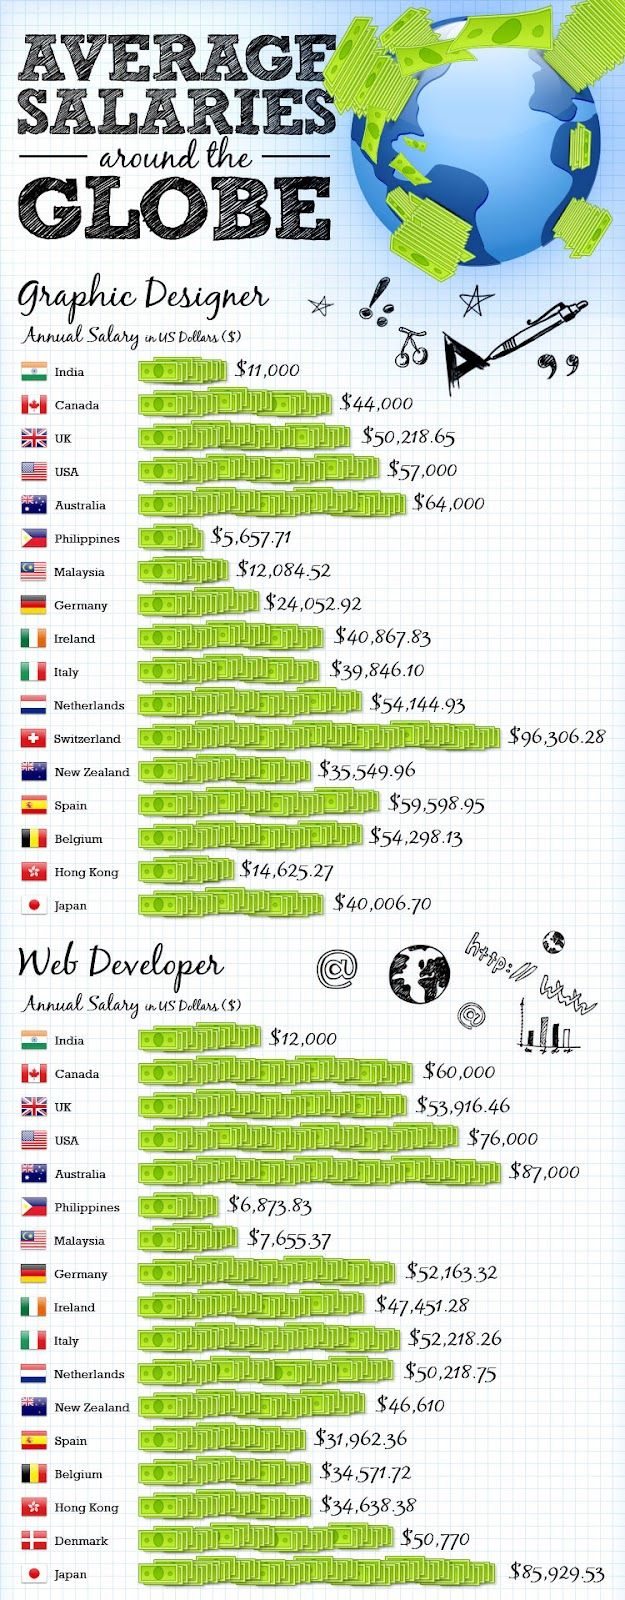 Soft Gets Average Salary Of A Graphic Designer And Web Developer What Are The Salaries Of Graphic Designers And Web Dev Graphic Design Web Development Design